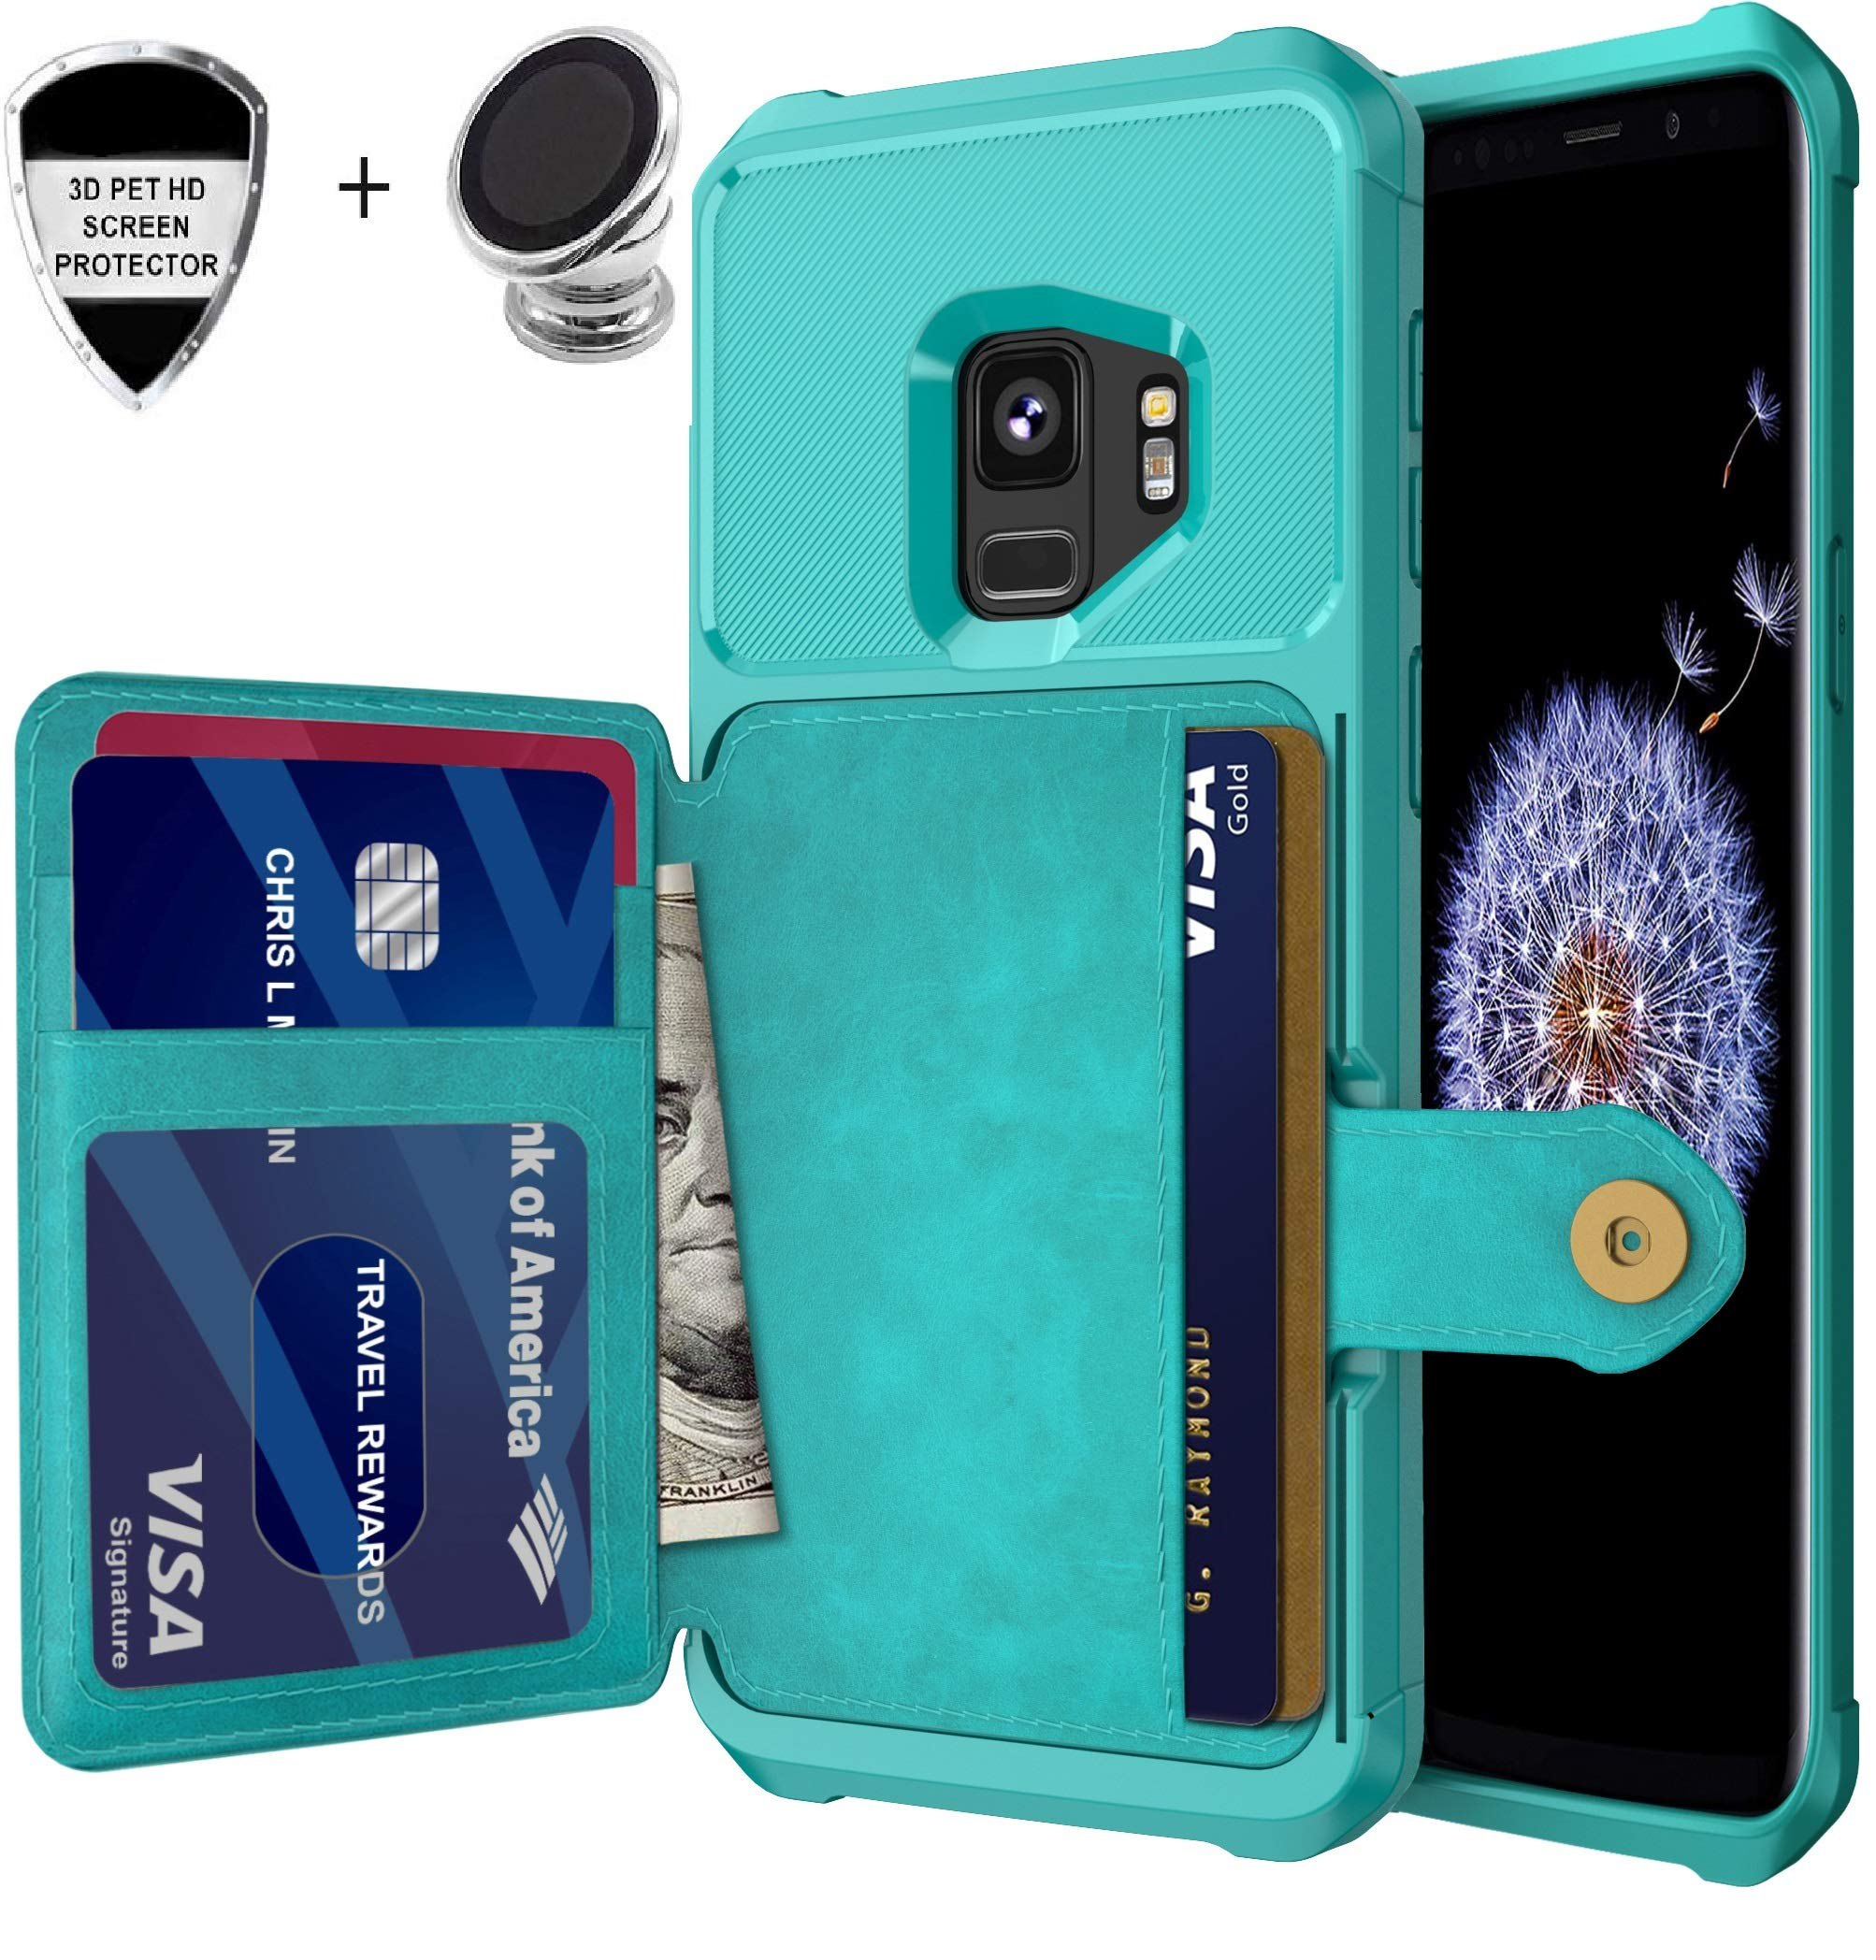 Galaxy S9 Wallet Case, Sumsung S9 Durable Shockproof Slim Magnetic Flip Leather Card Slots Holder Kickstand Protective Case Cover Included Car Phone Mount (Turquoise)